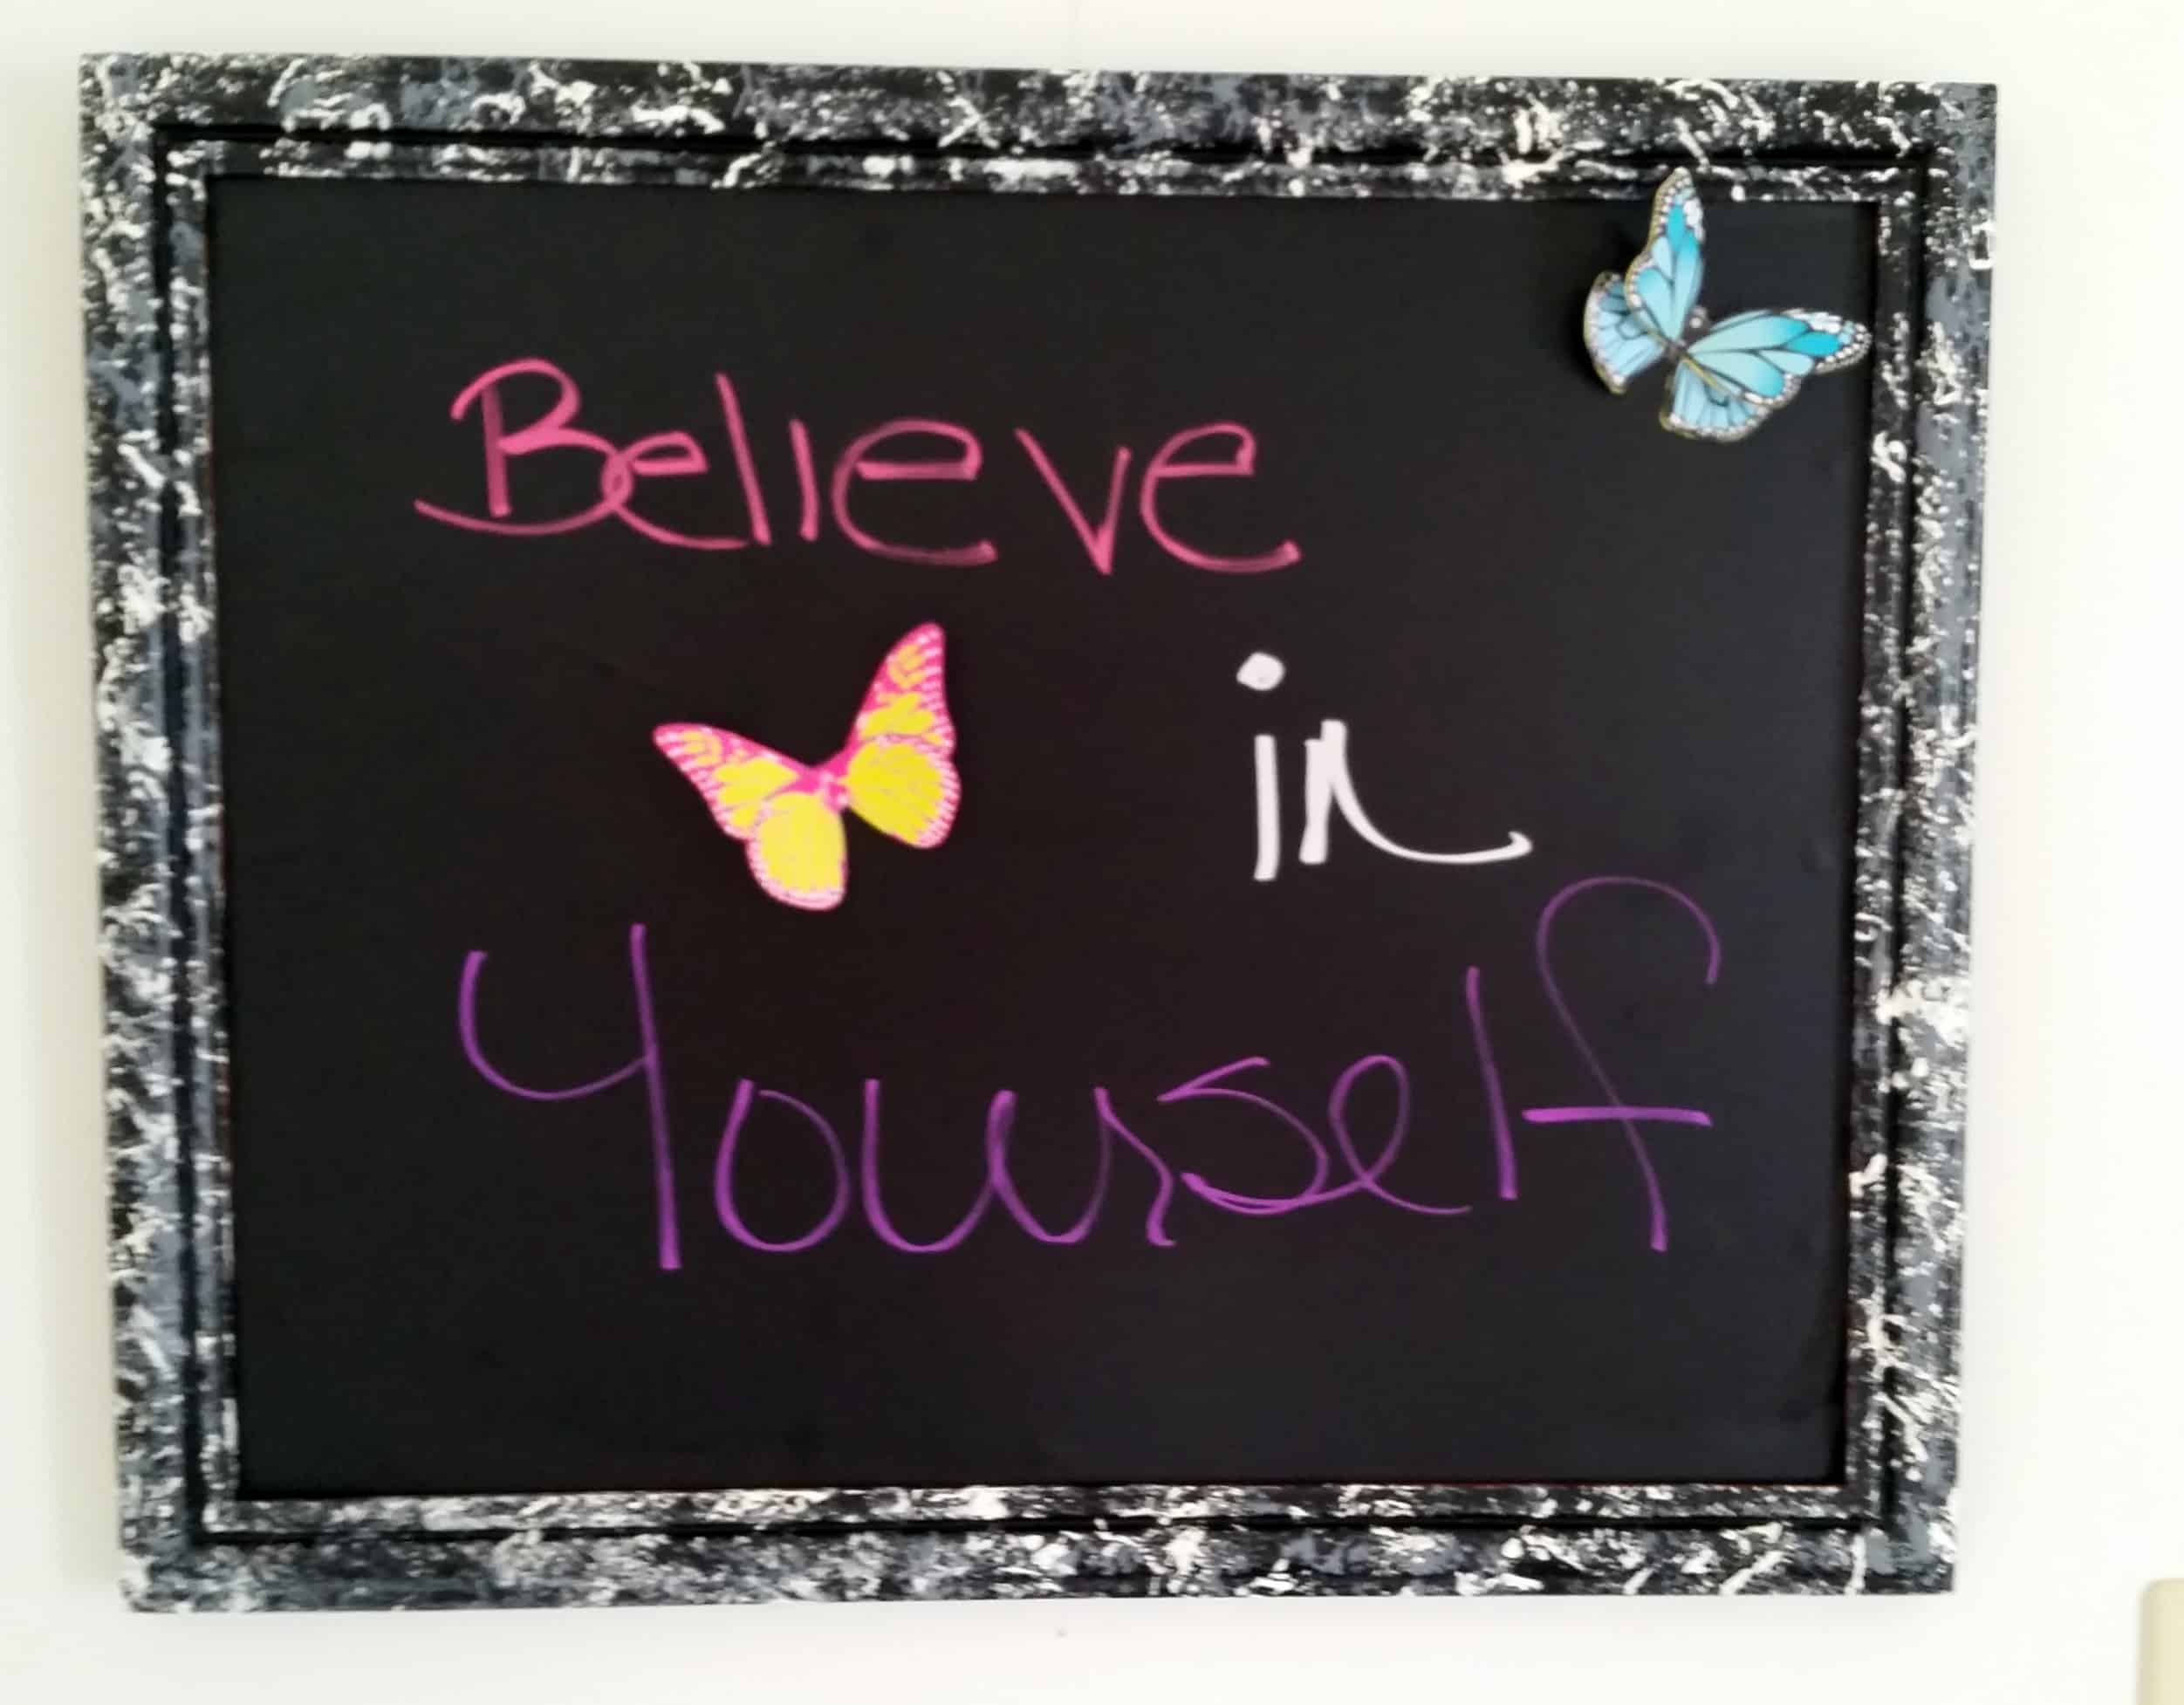 photo of how to upcycle a photo collage frame with marbled background and the words believe in yourself written on it with butterflies